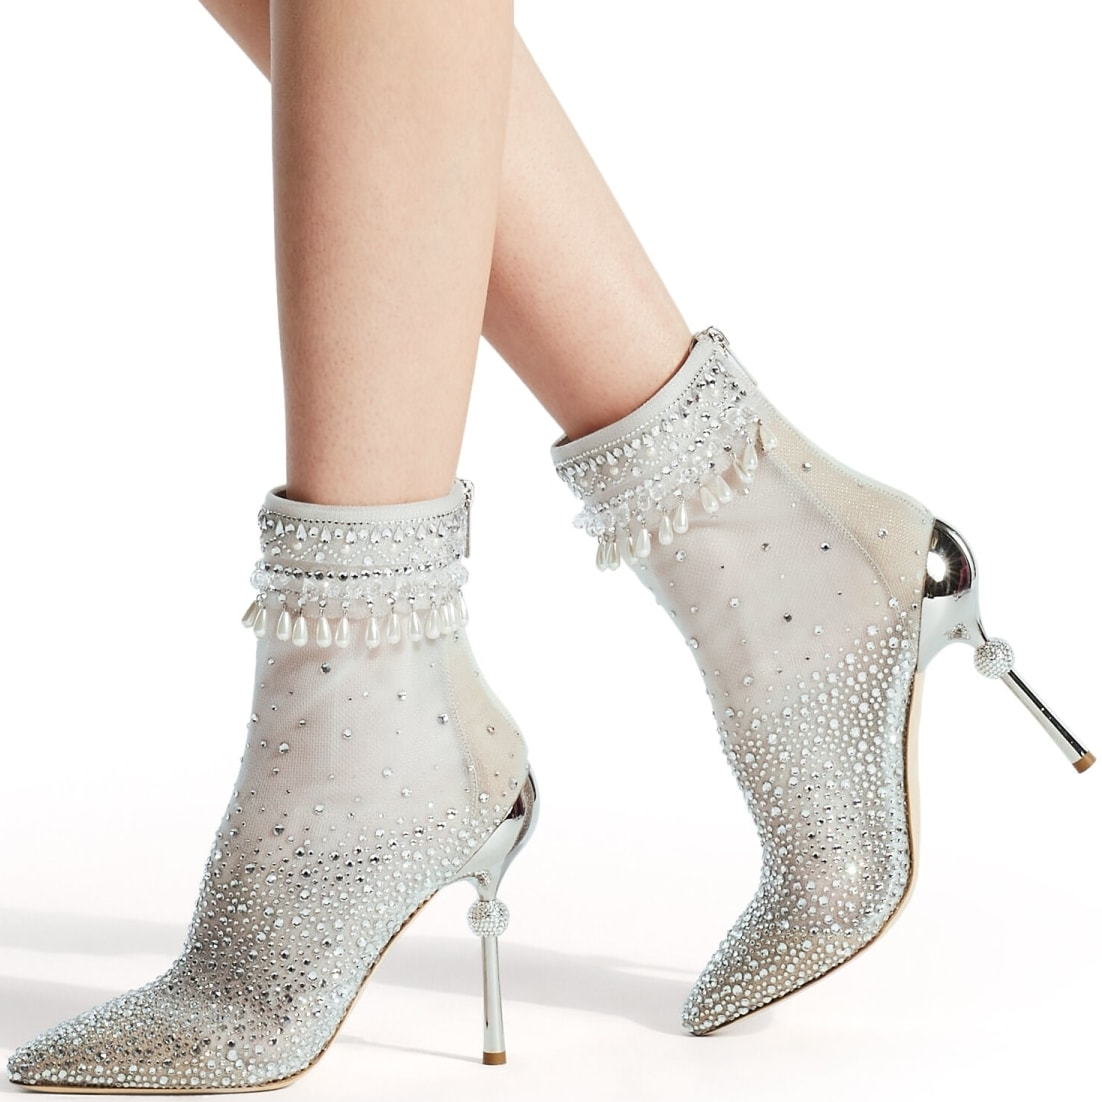 The Cynosure sock booties are made from a fine transparent thread and adorned with a cascade of hotfix crystals in addition to crystal and pearl drop embroidery around the top edge of the boot